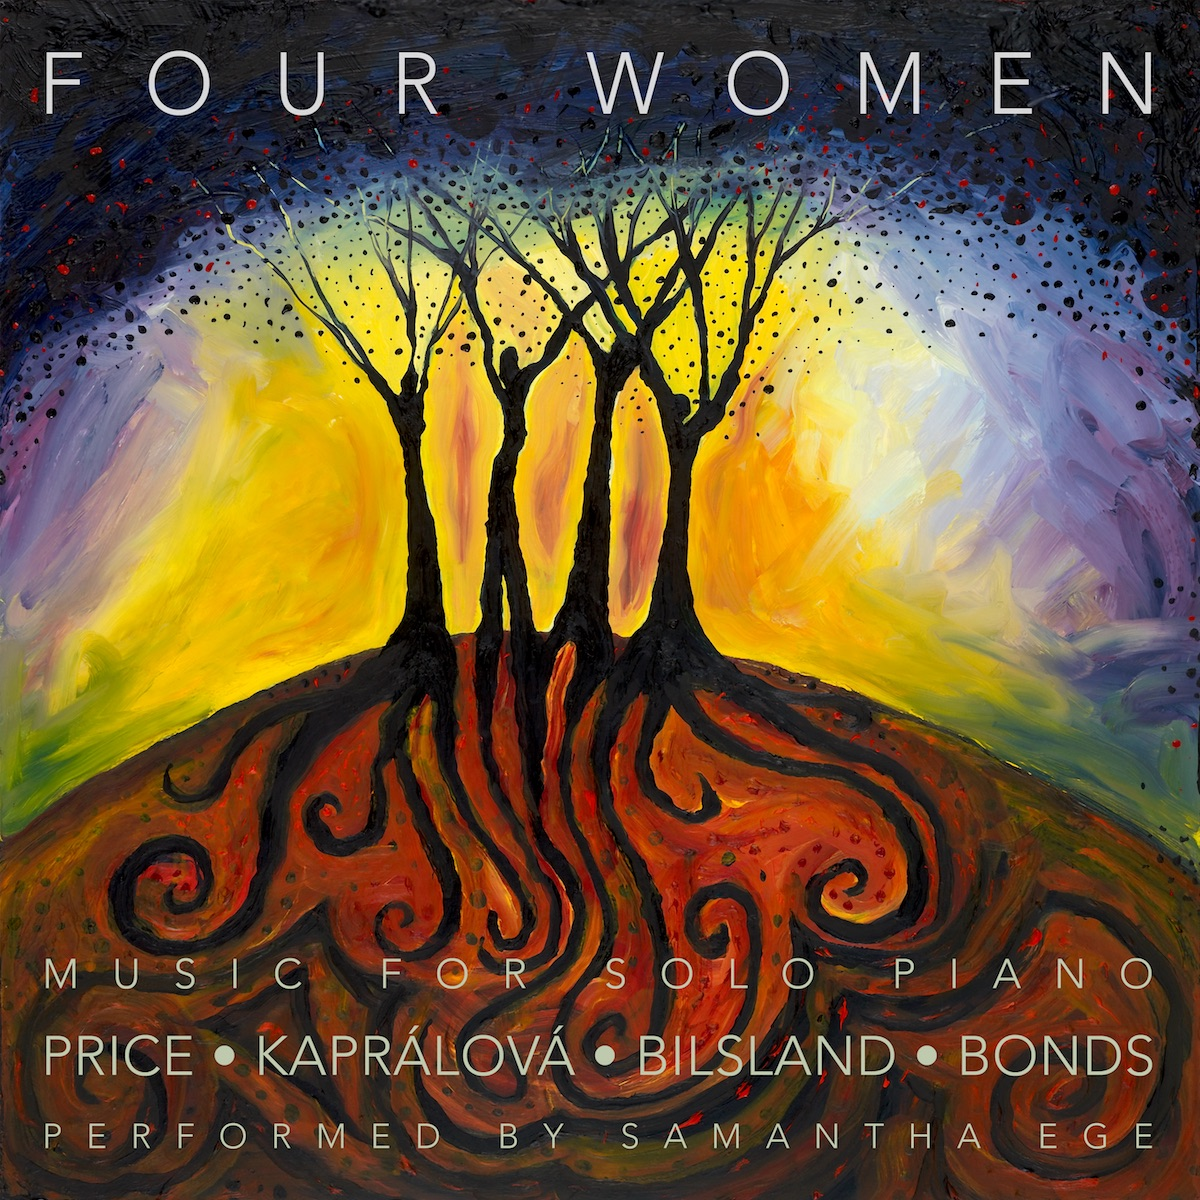 Four Women: Music for solo piano by Price, Kapralova, Bilsland and Bonds